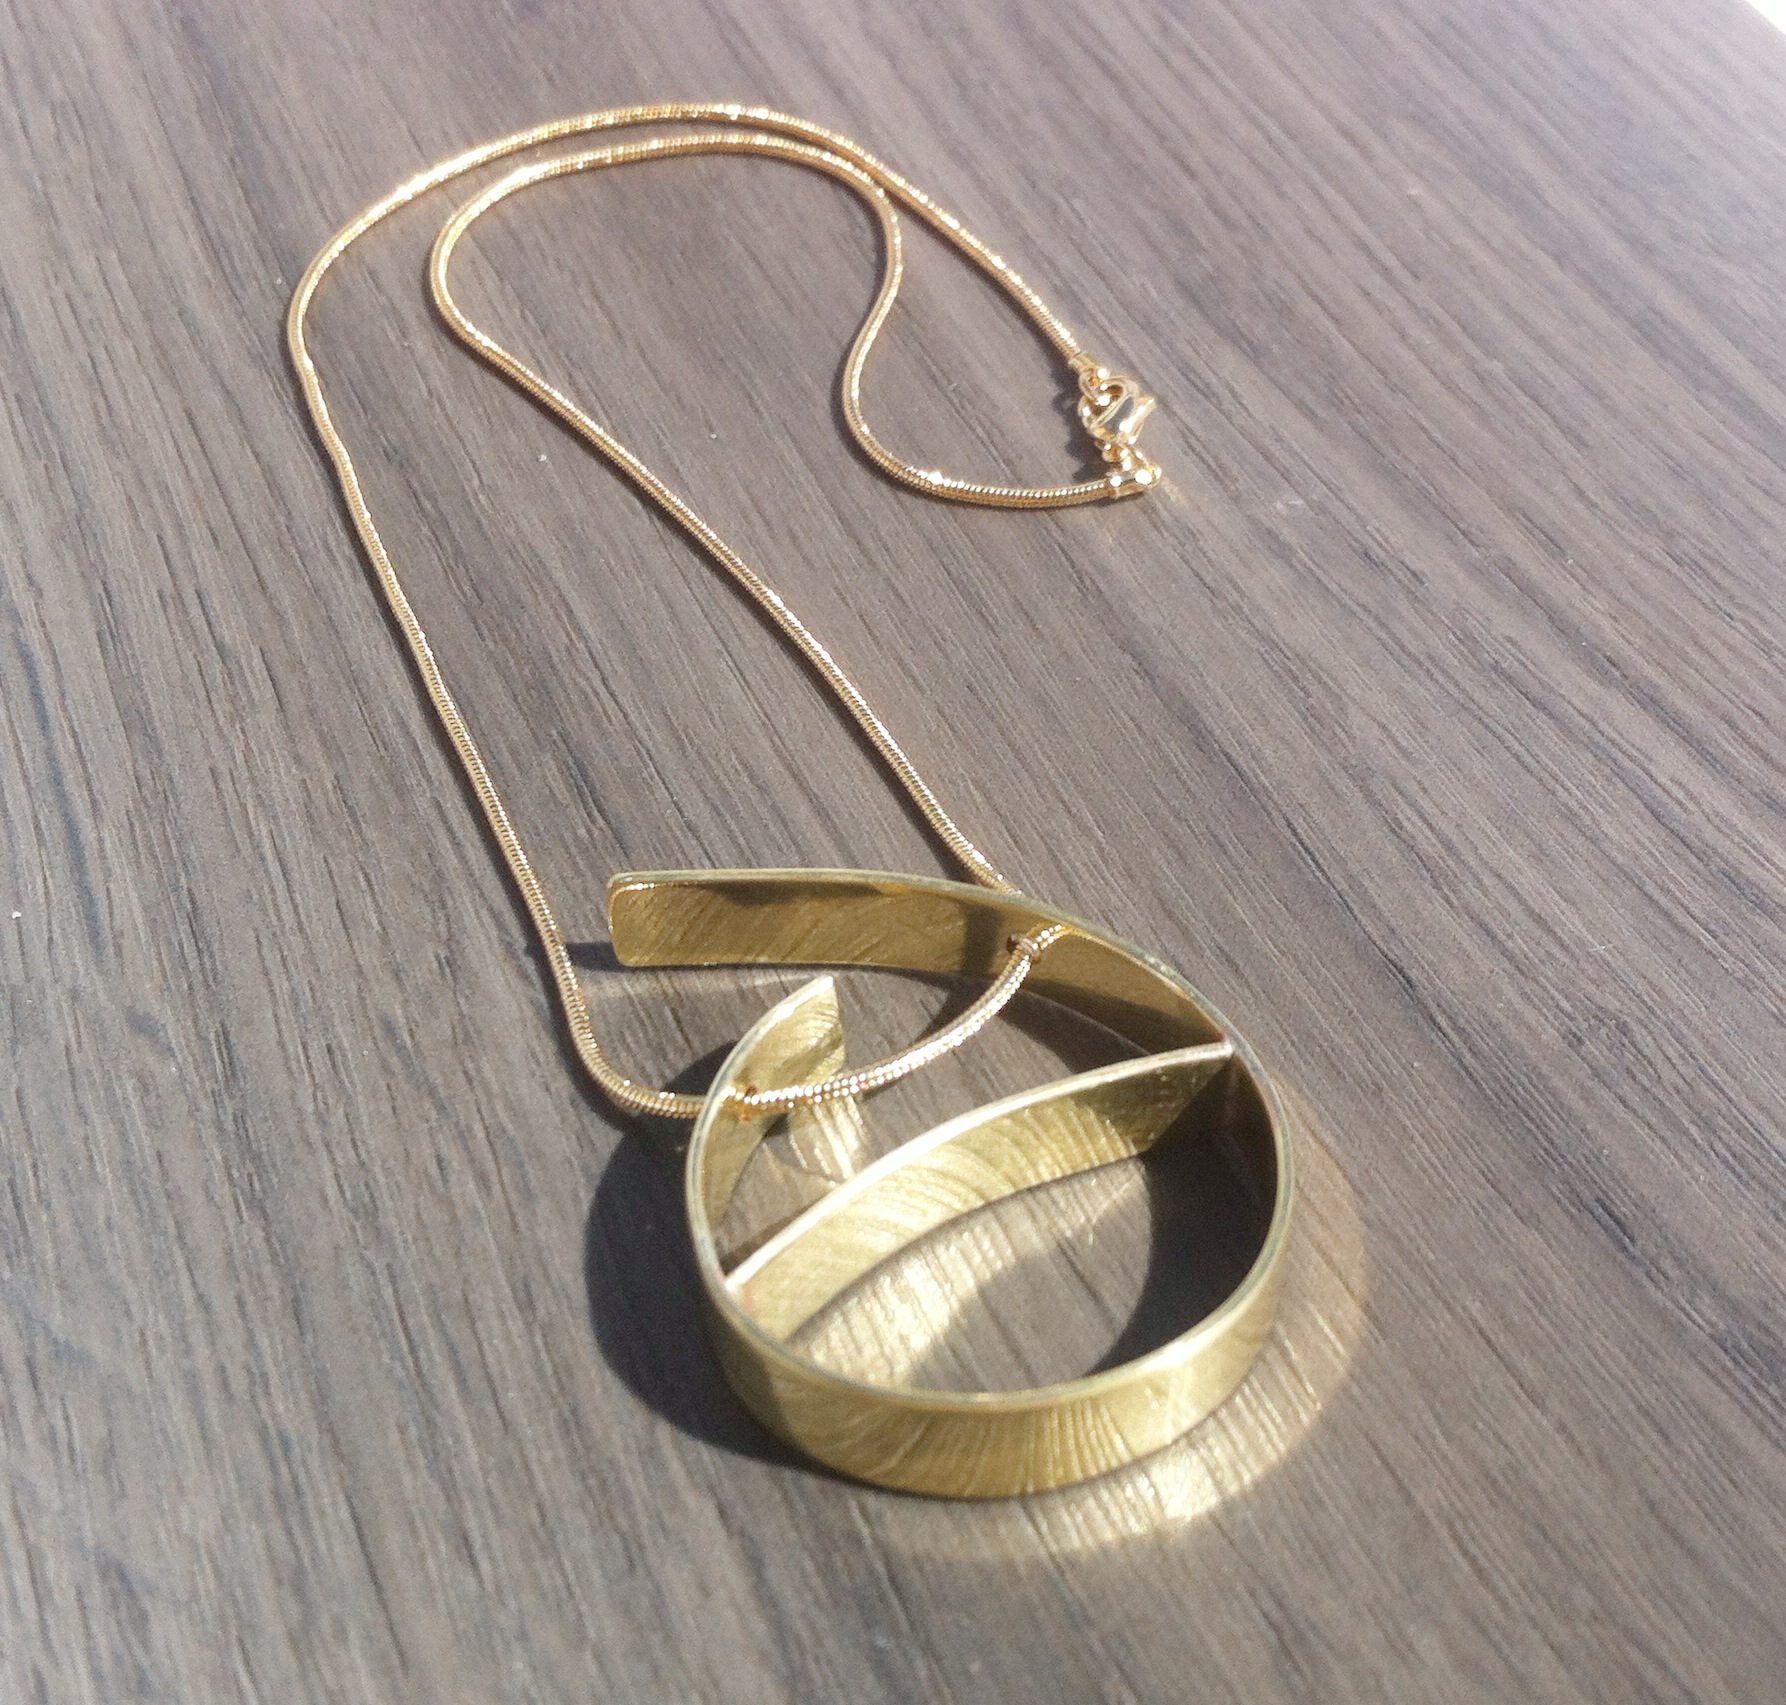 plated silver jewelry sterling in gold brass stati with stations products necklace metro